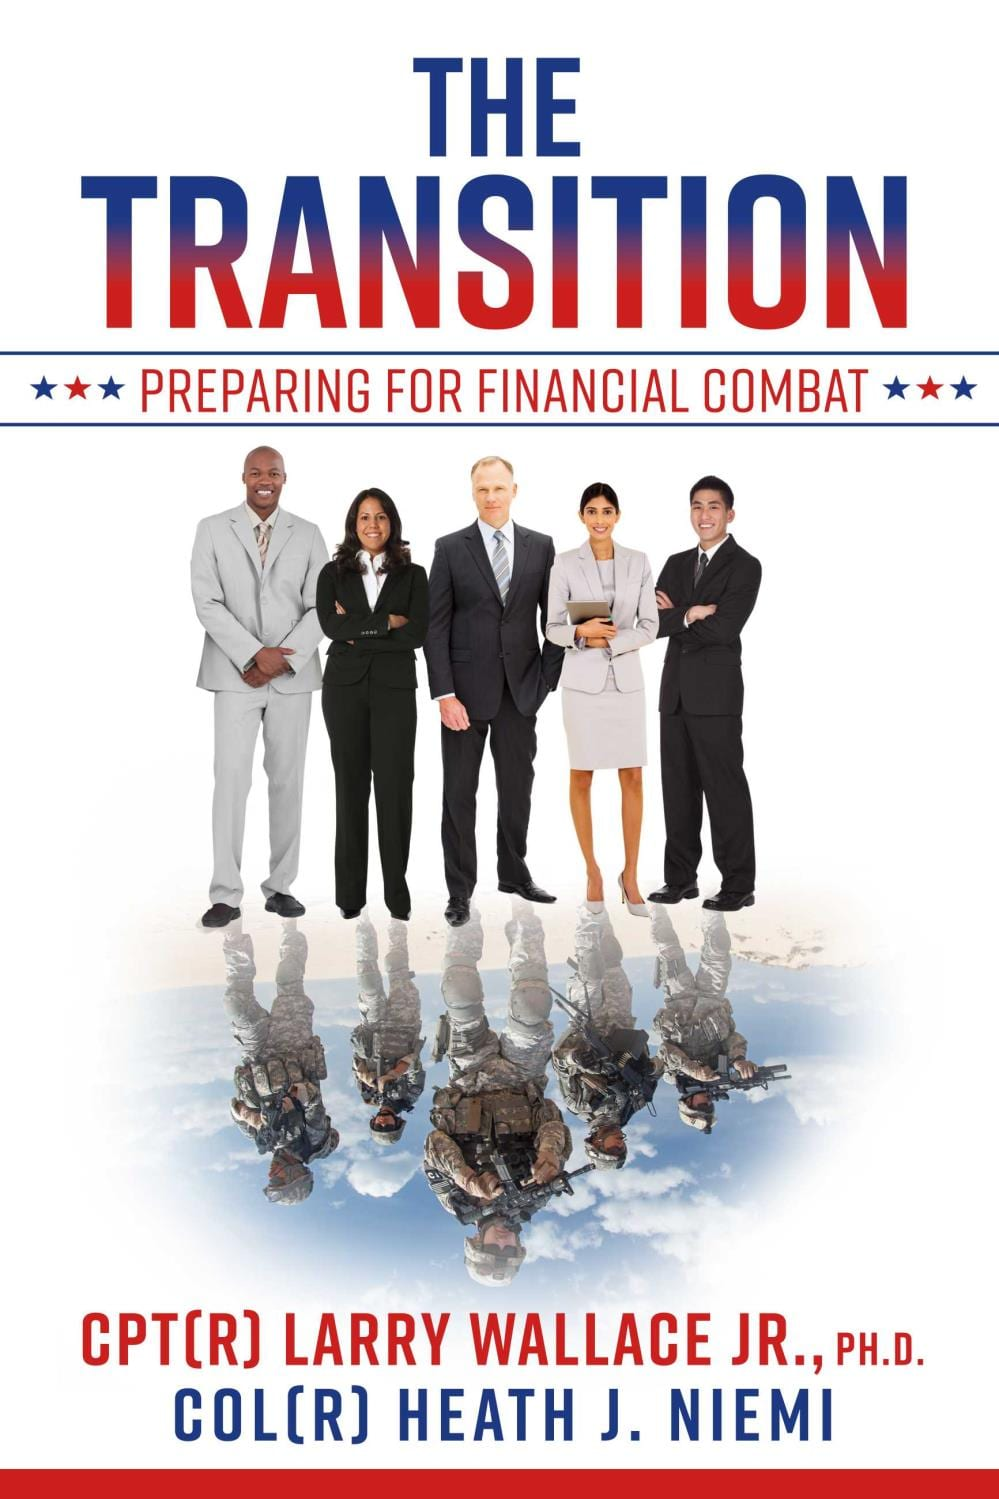 The Transition Book Cover Image